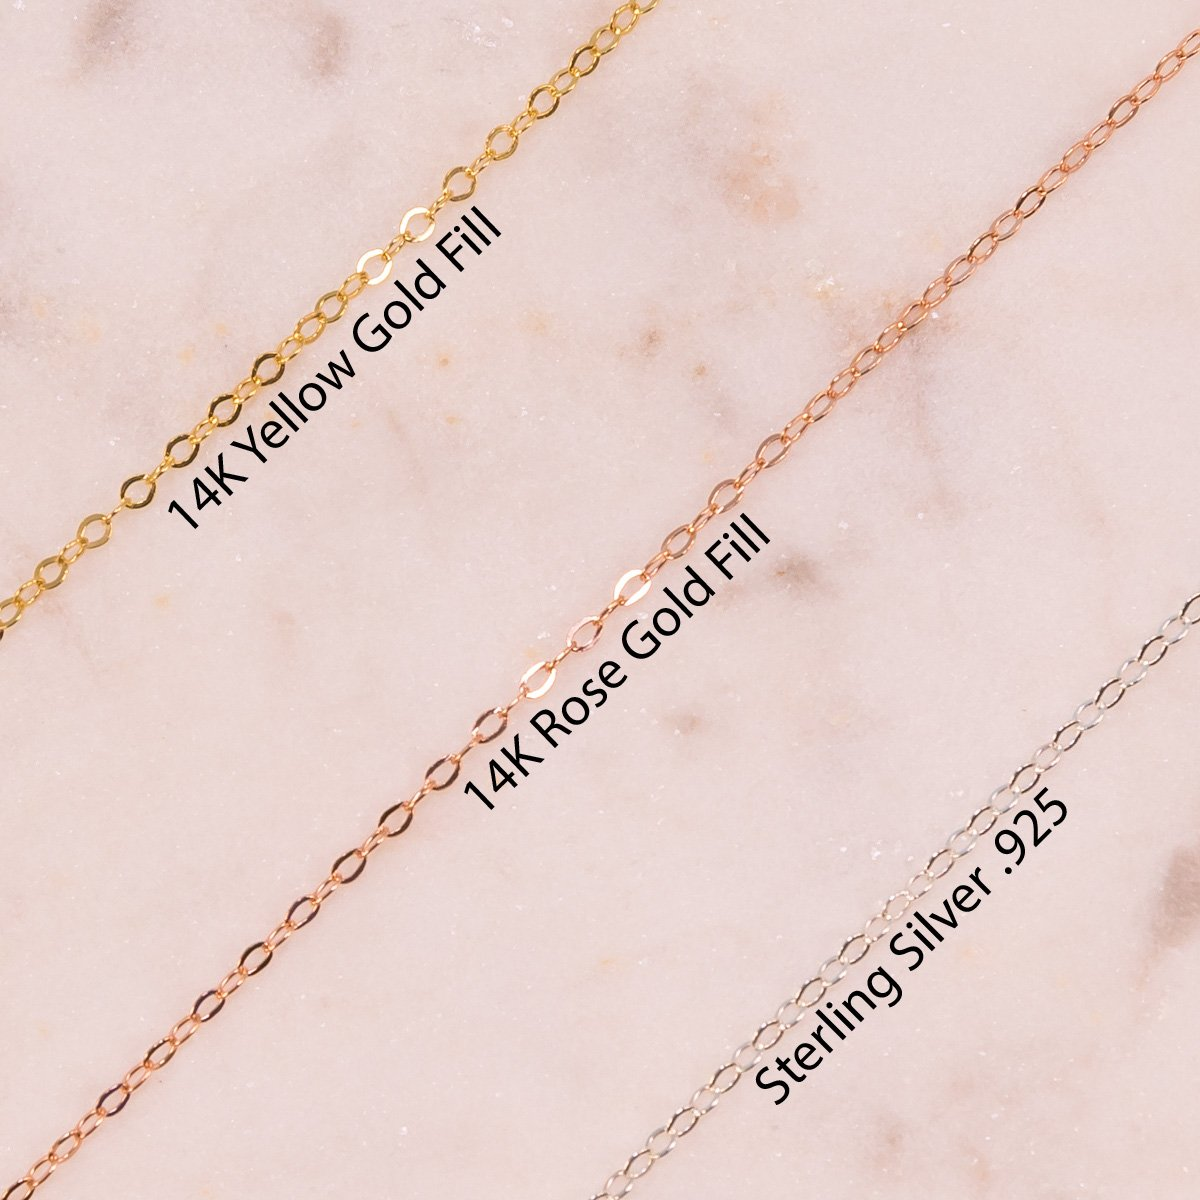 Yellow Gold, Rose Gold, Sterling Silver Chain Comparison Liz.Beth Jewelry Co.